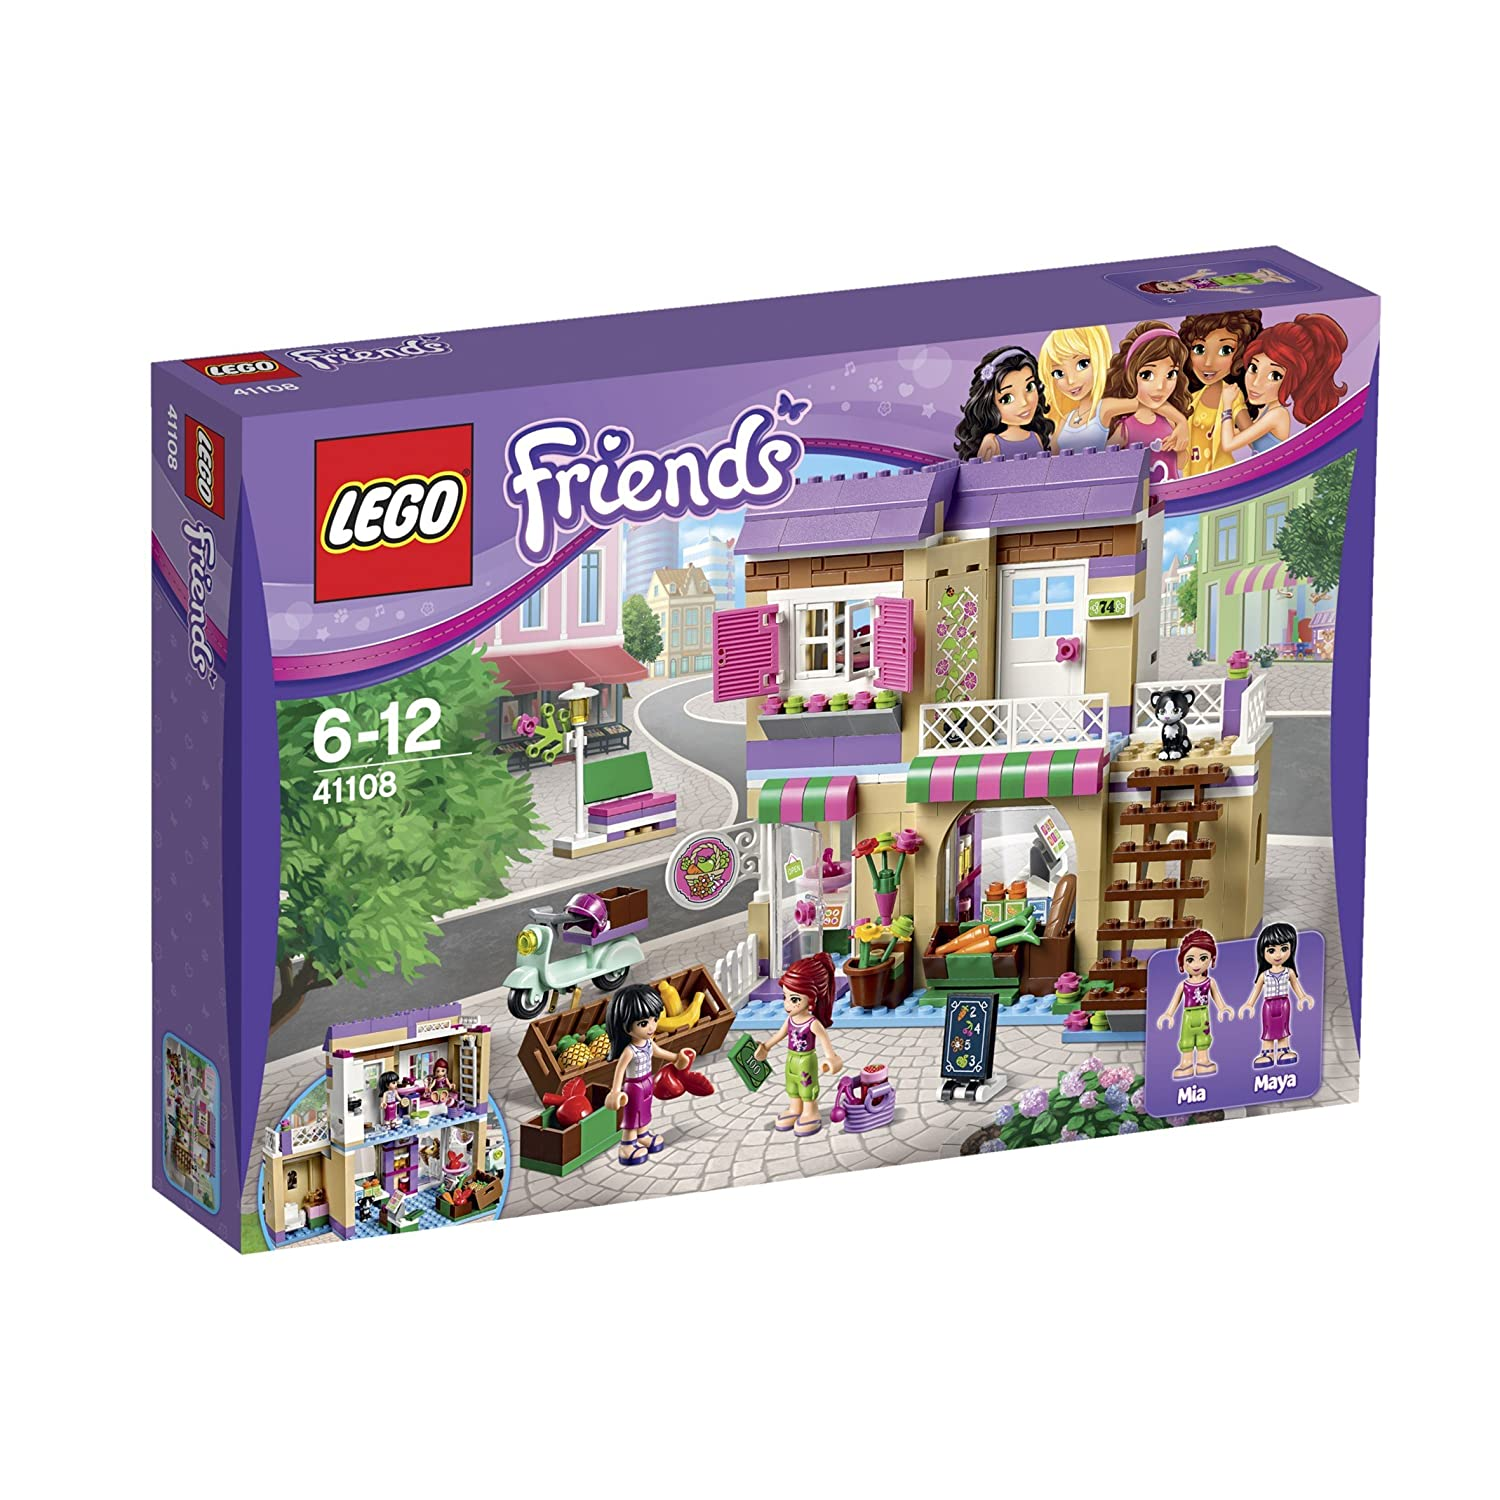 LEGO Friends 41108 - - - Heartlake Lebensmittelmarkt feea81